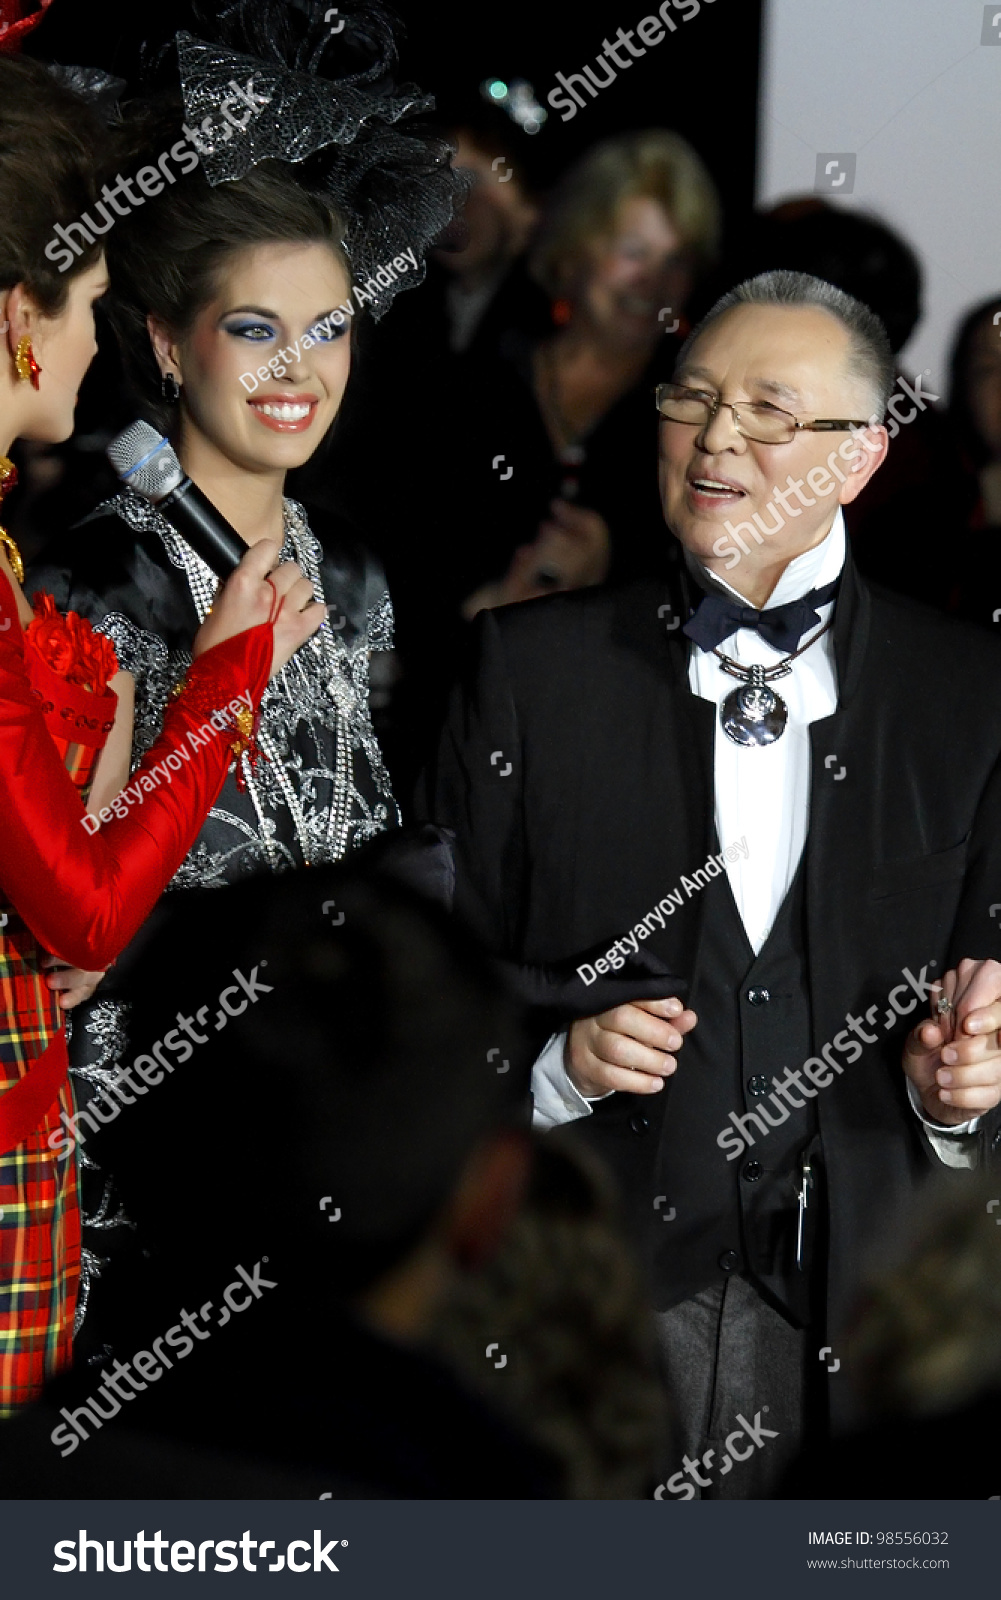 Singer Slava at the People Fashion Awards made a scandal 06/22/2011 26